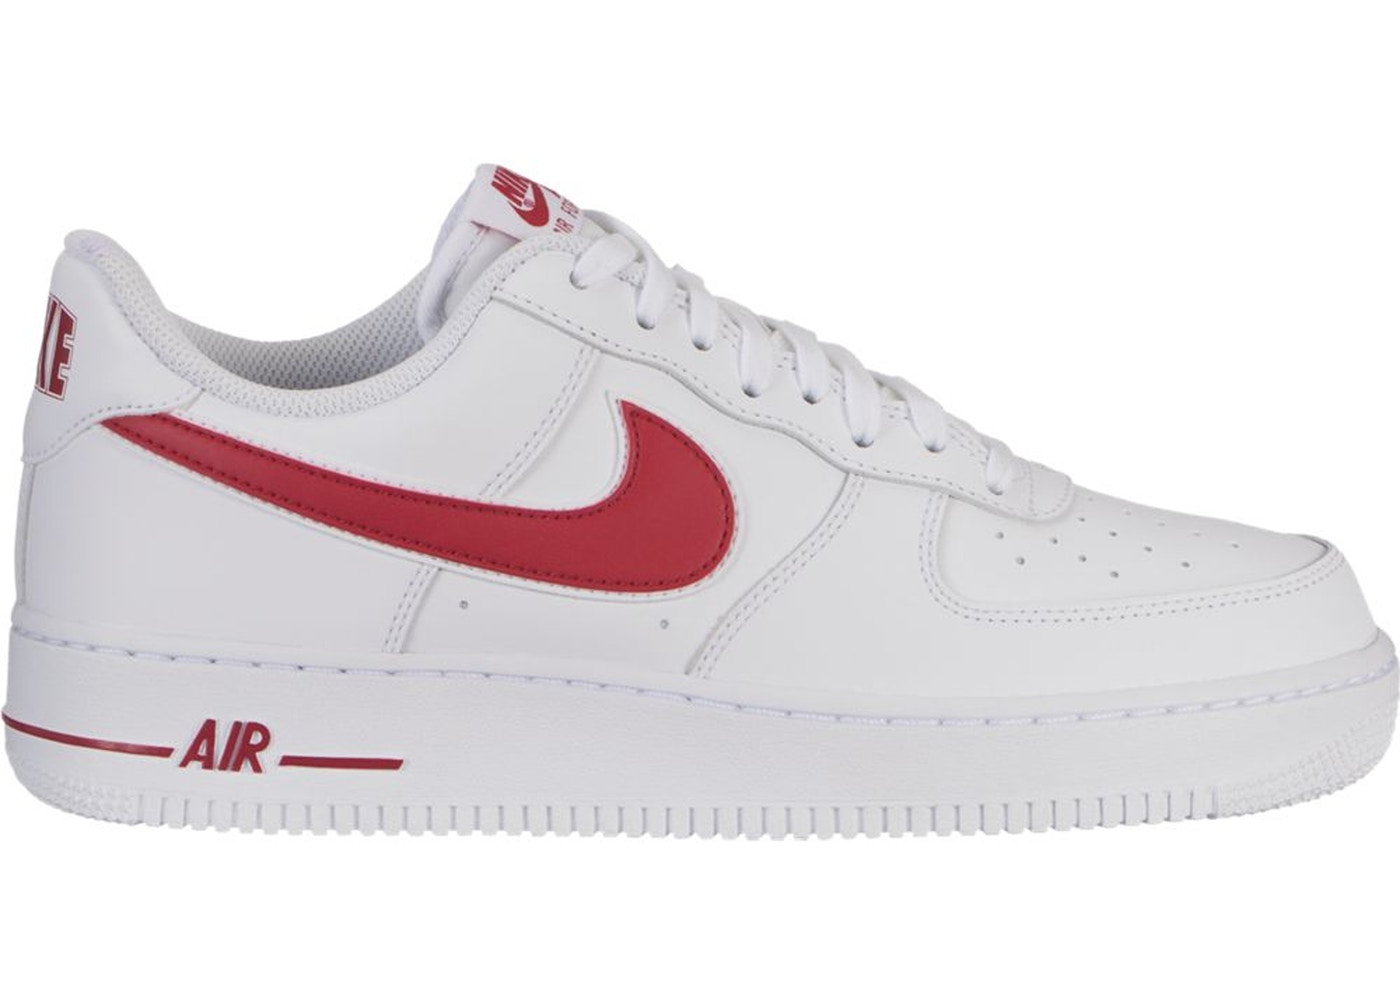 best website 2b5c9 c77bc Air Force 1 Low White Gym Red